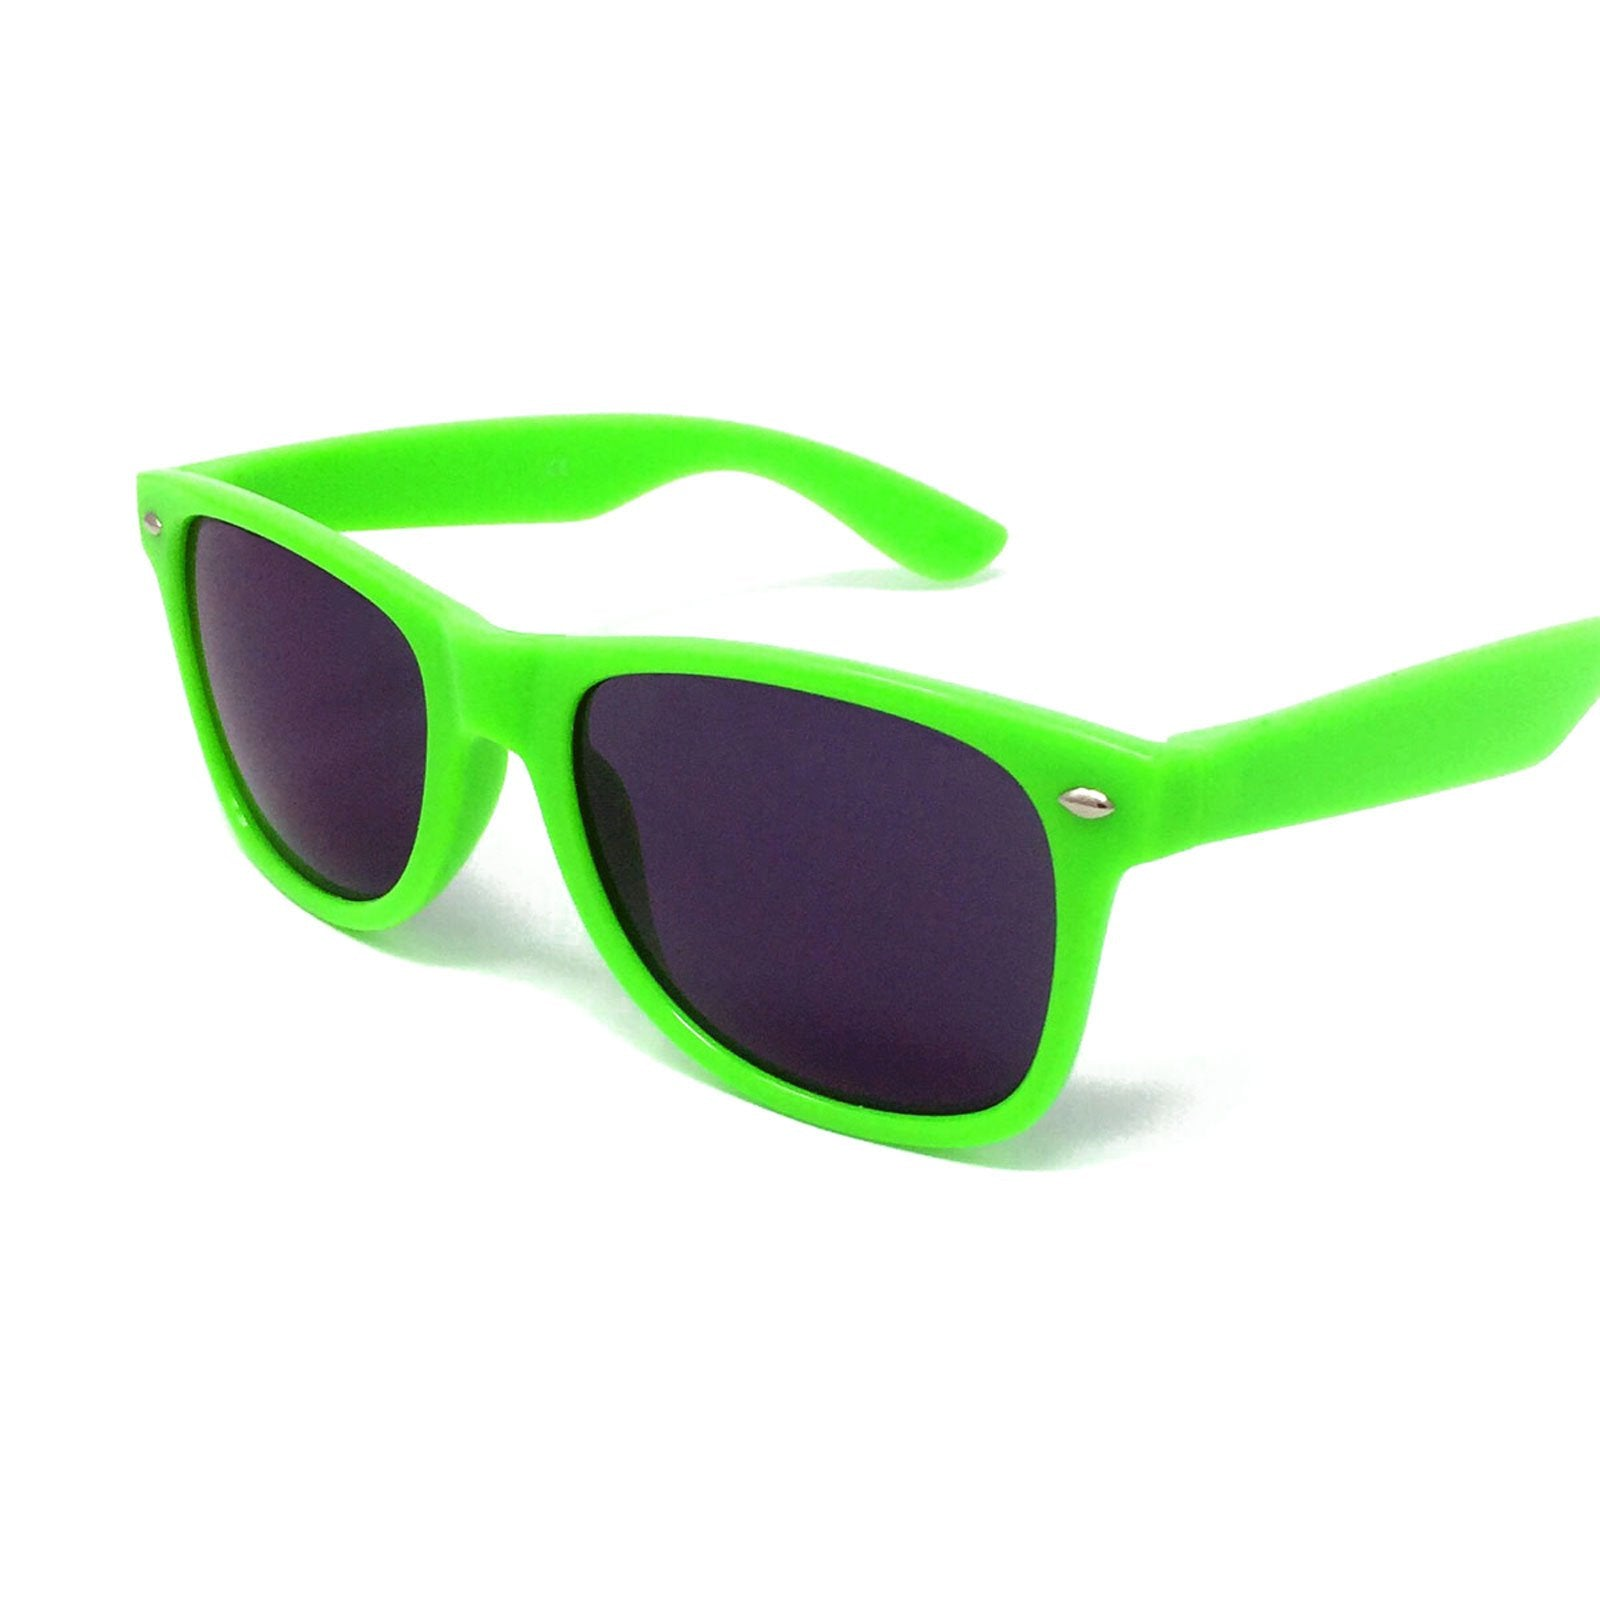 Wholesale Kids Classic Sunglasses - Green Frame, Black Lens